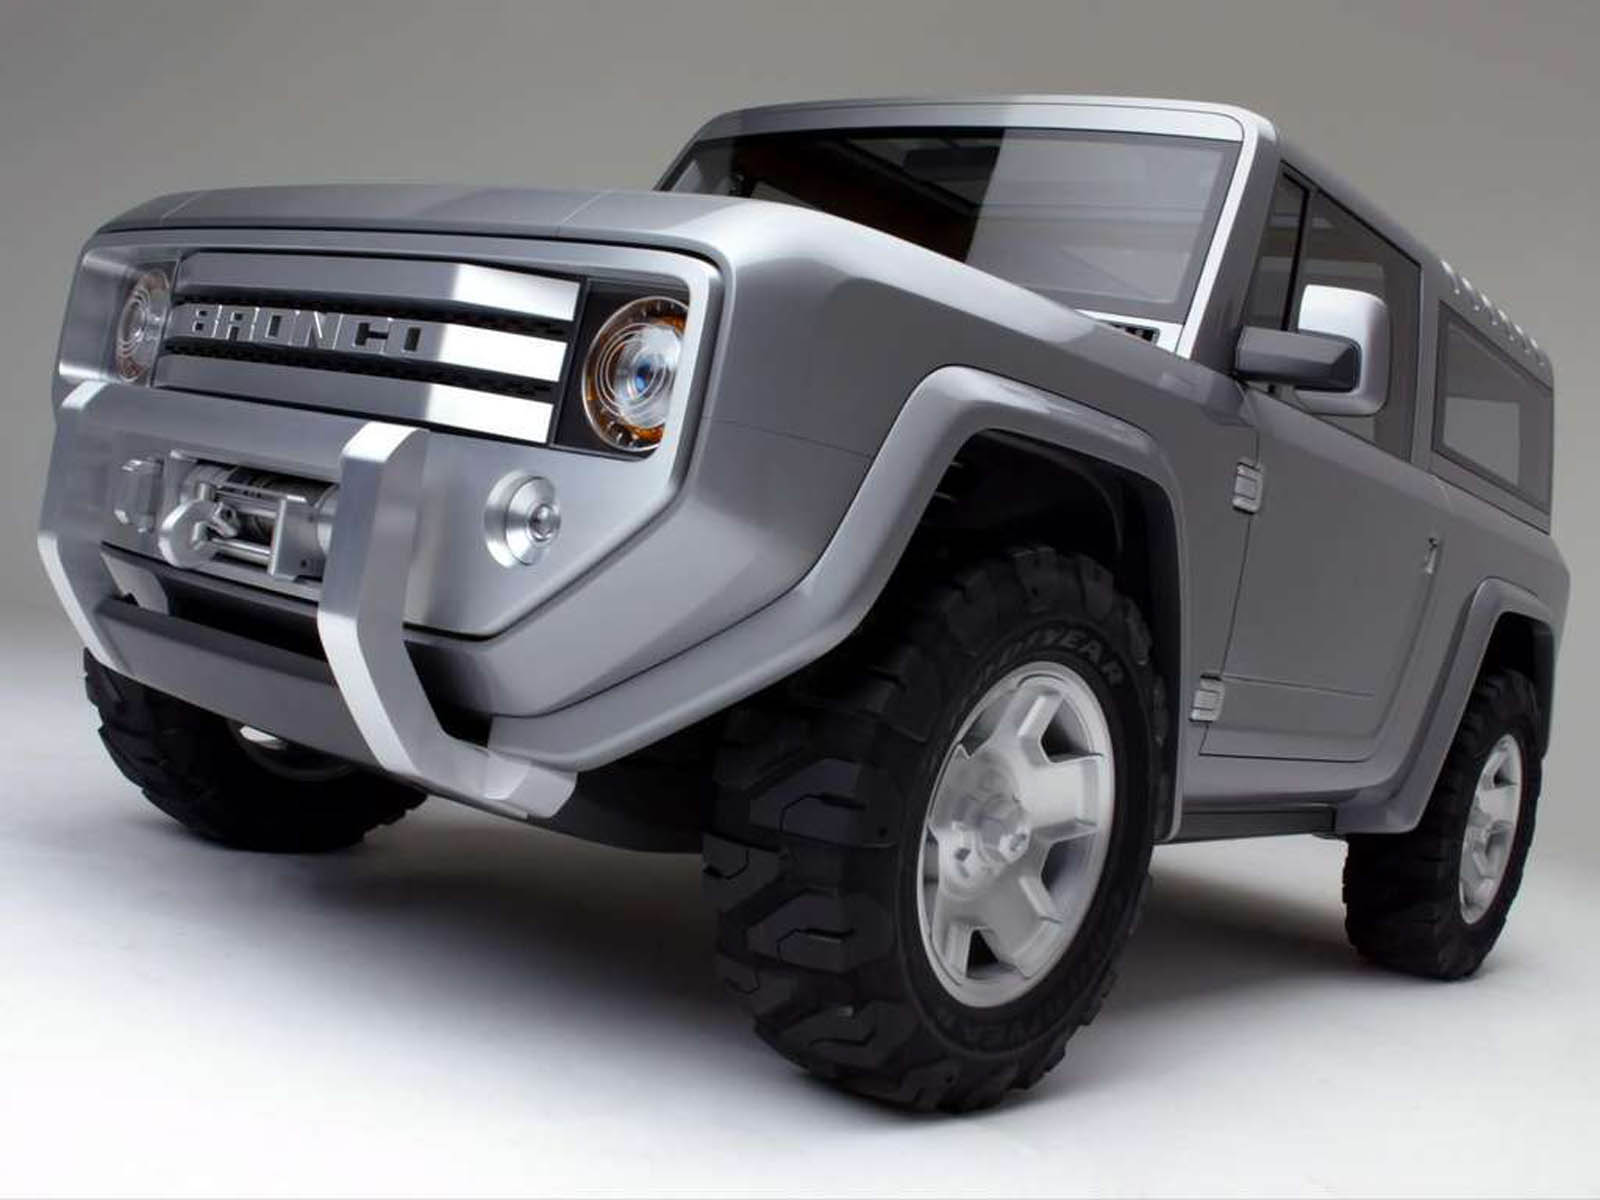 wallpapers: Ford Bronco Concept Car Wallpapers